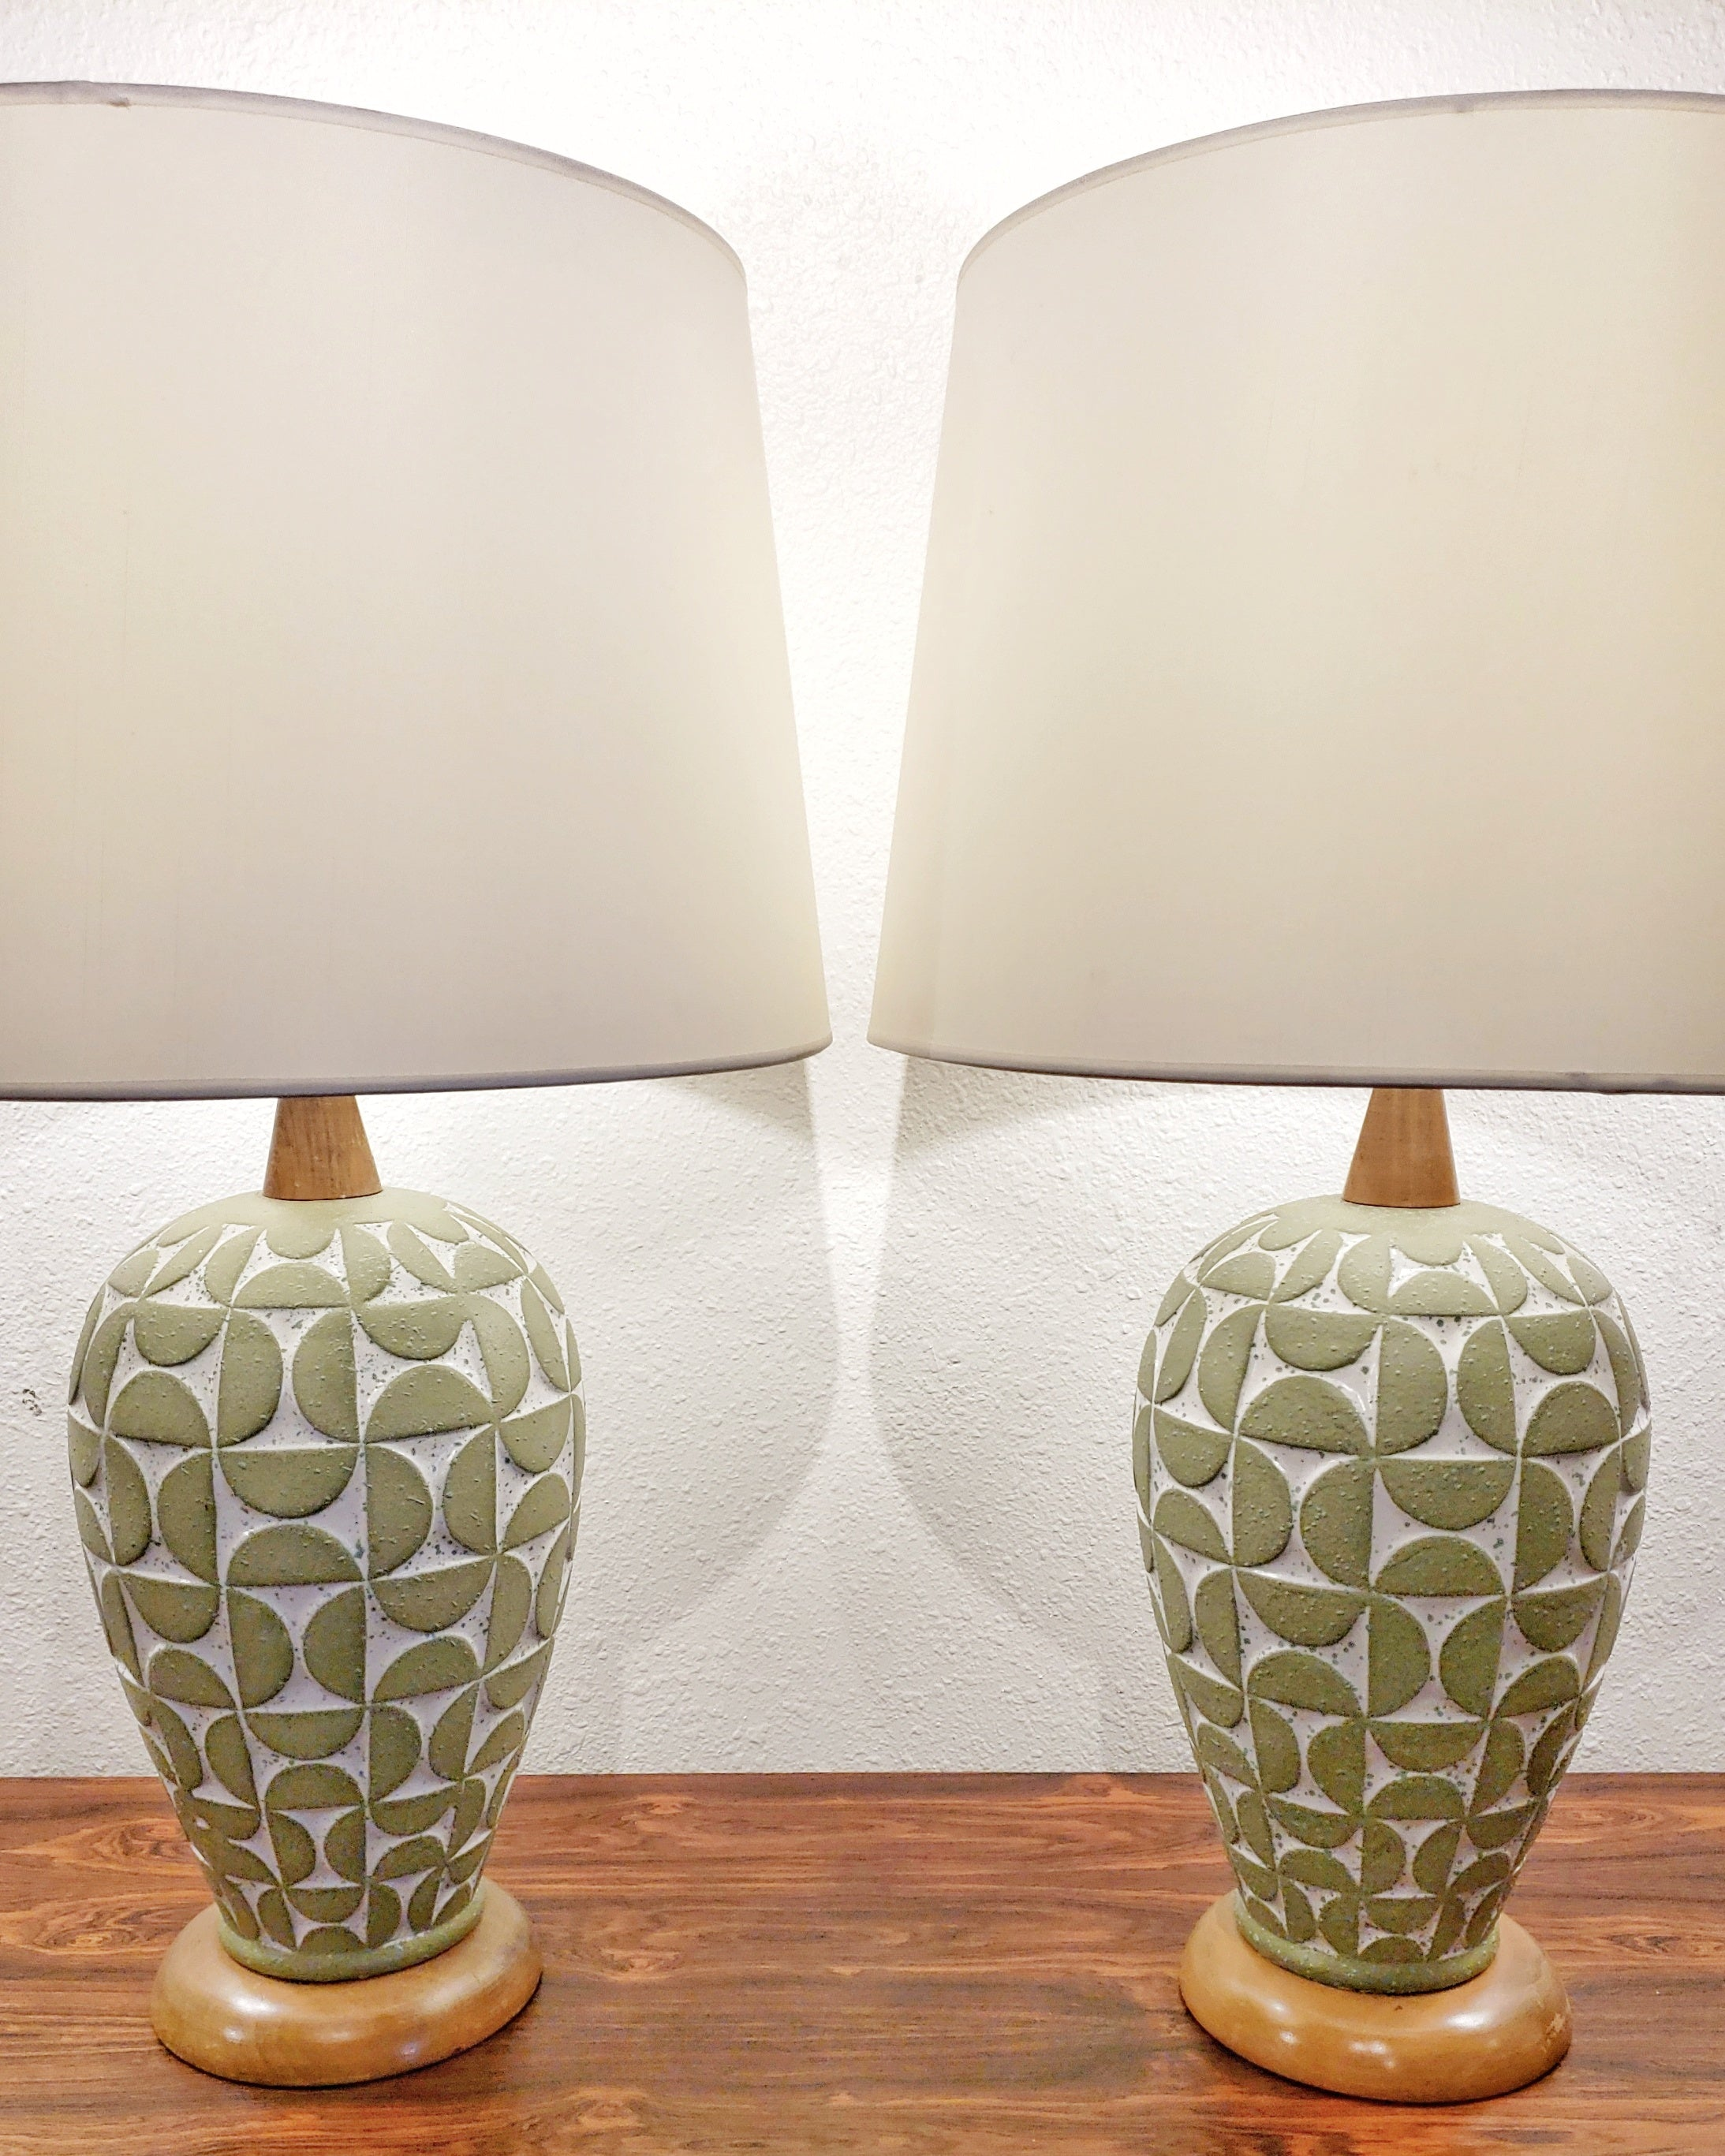 SCULPTED GEOMETRIC RELIEF TABLE LAMPS